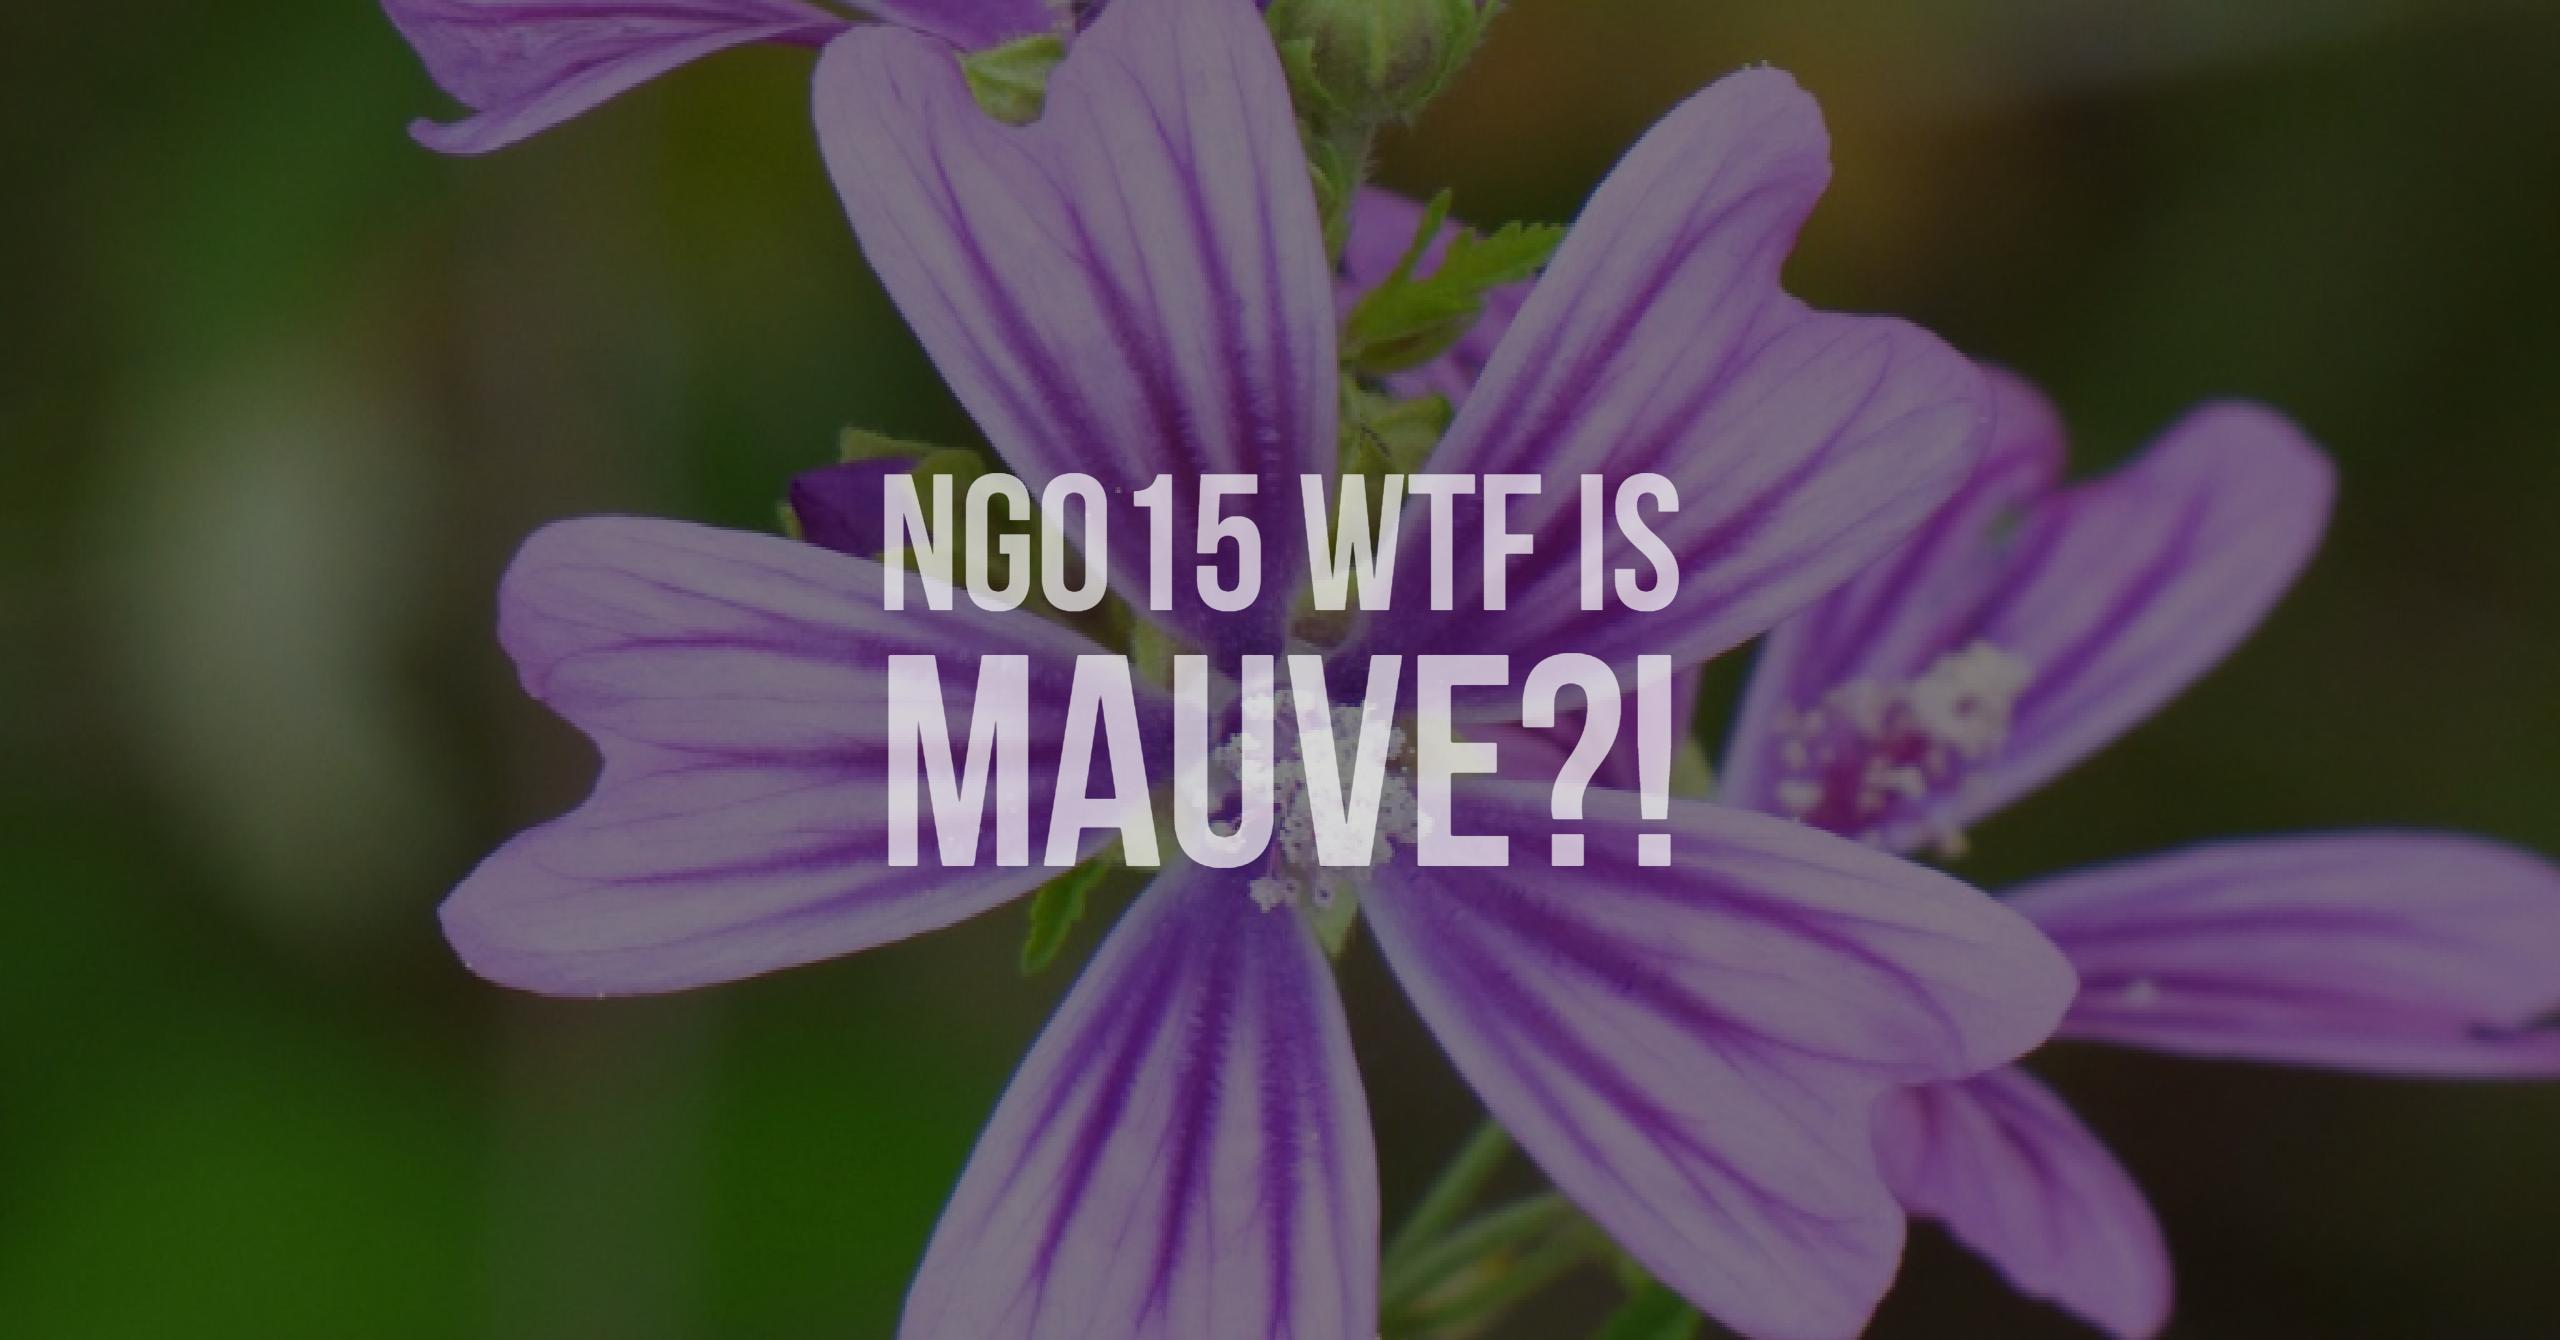 NG015 WTF is mauve?!